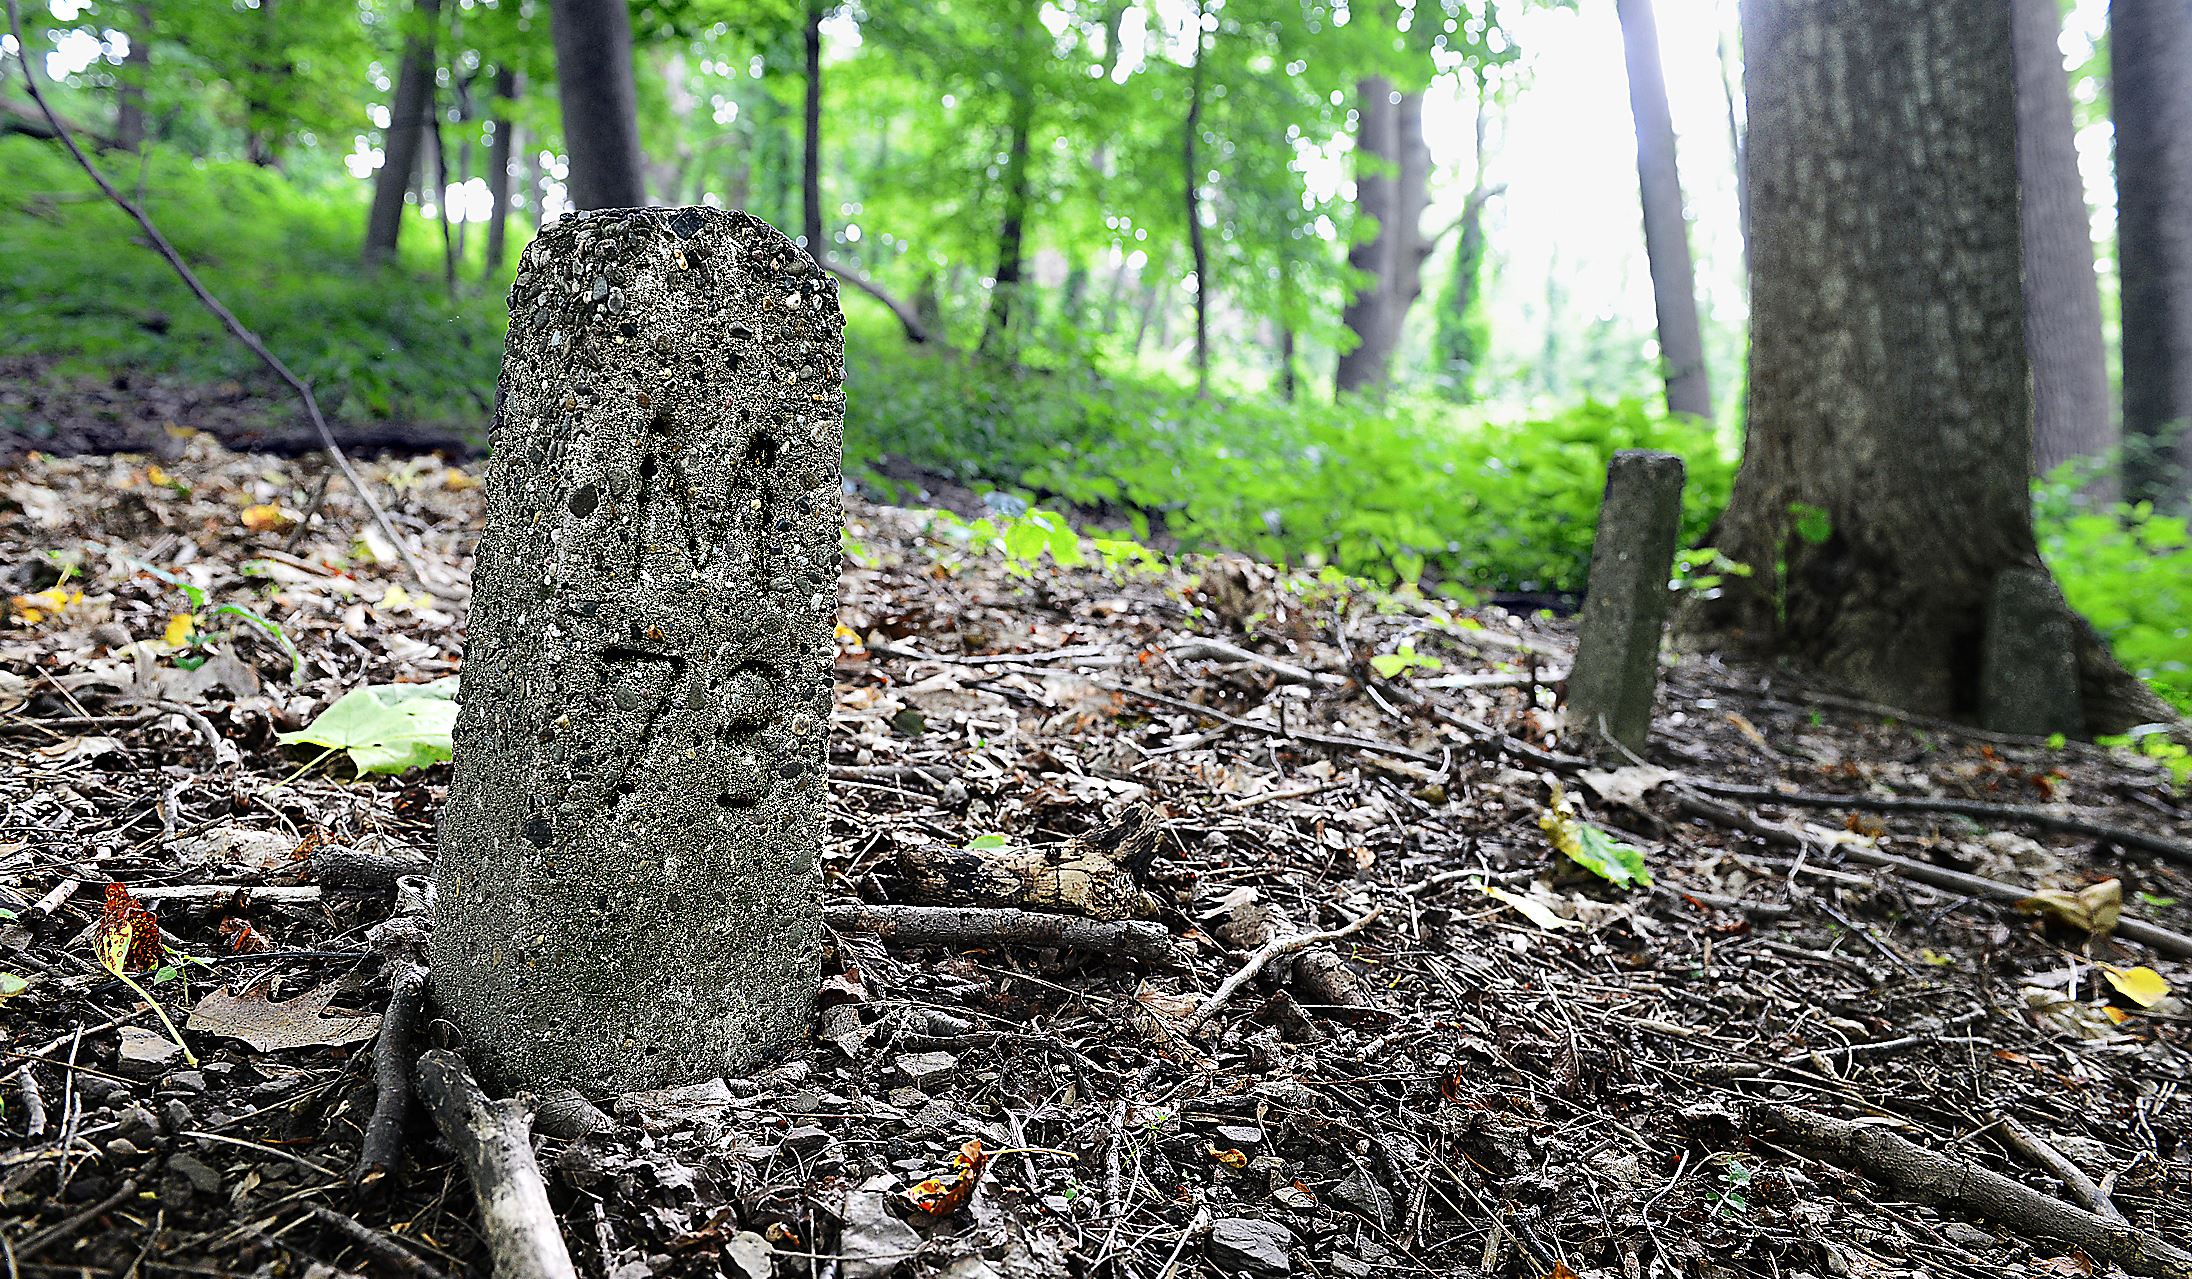 Isolated in the woods of the former Dixmont State Hospital property in Kilbuck are the crumbling concrete markers of more than 1,300 graves of patients who died from 1863 through 1937.